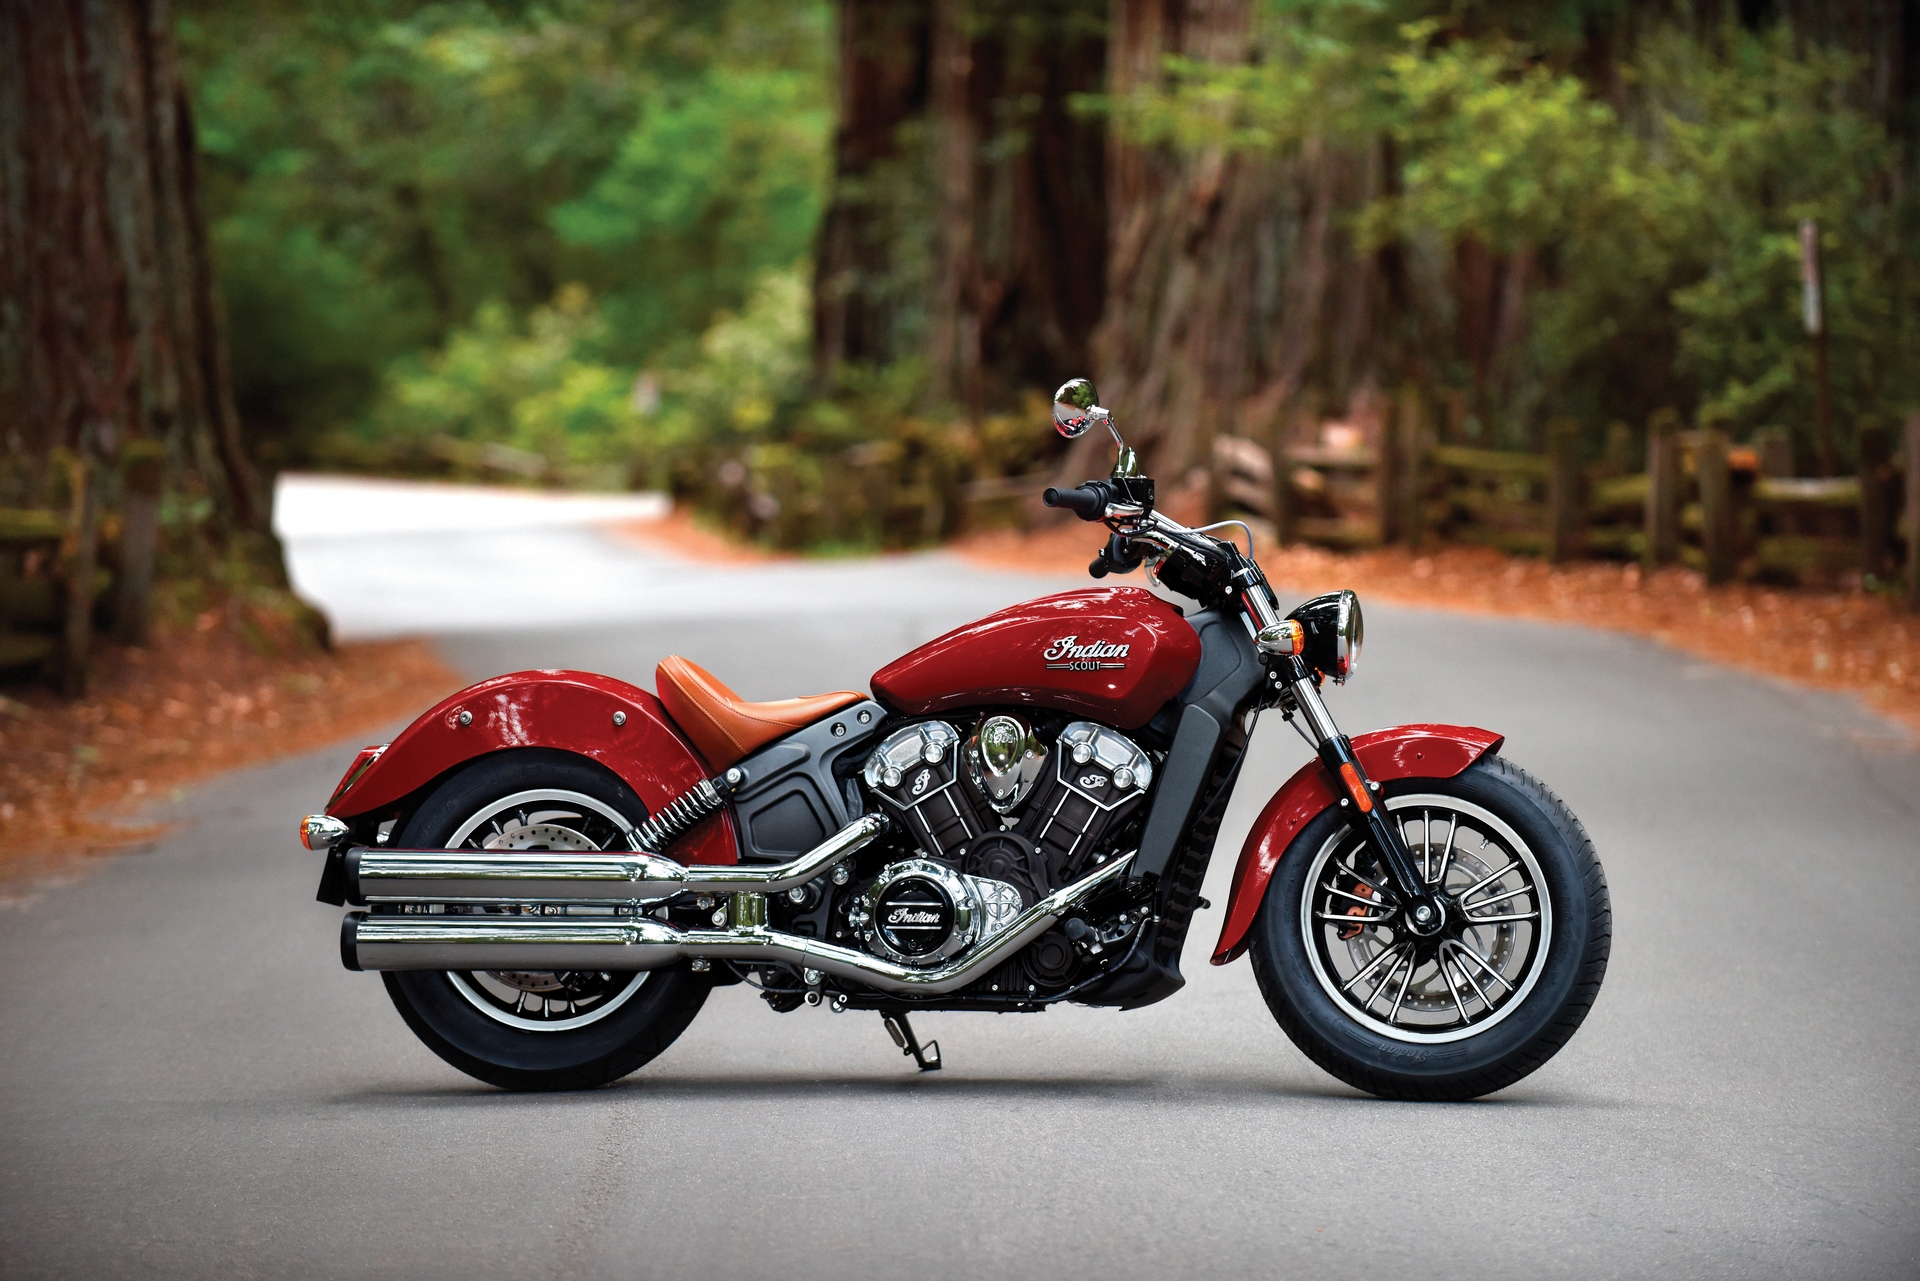 Indian Scout Hd Wallpaper Hd And 4k Wallpaper Collections